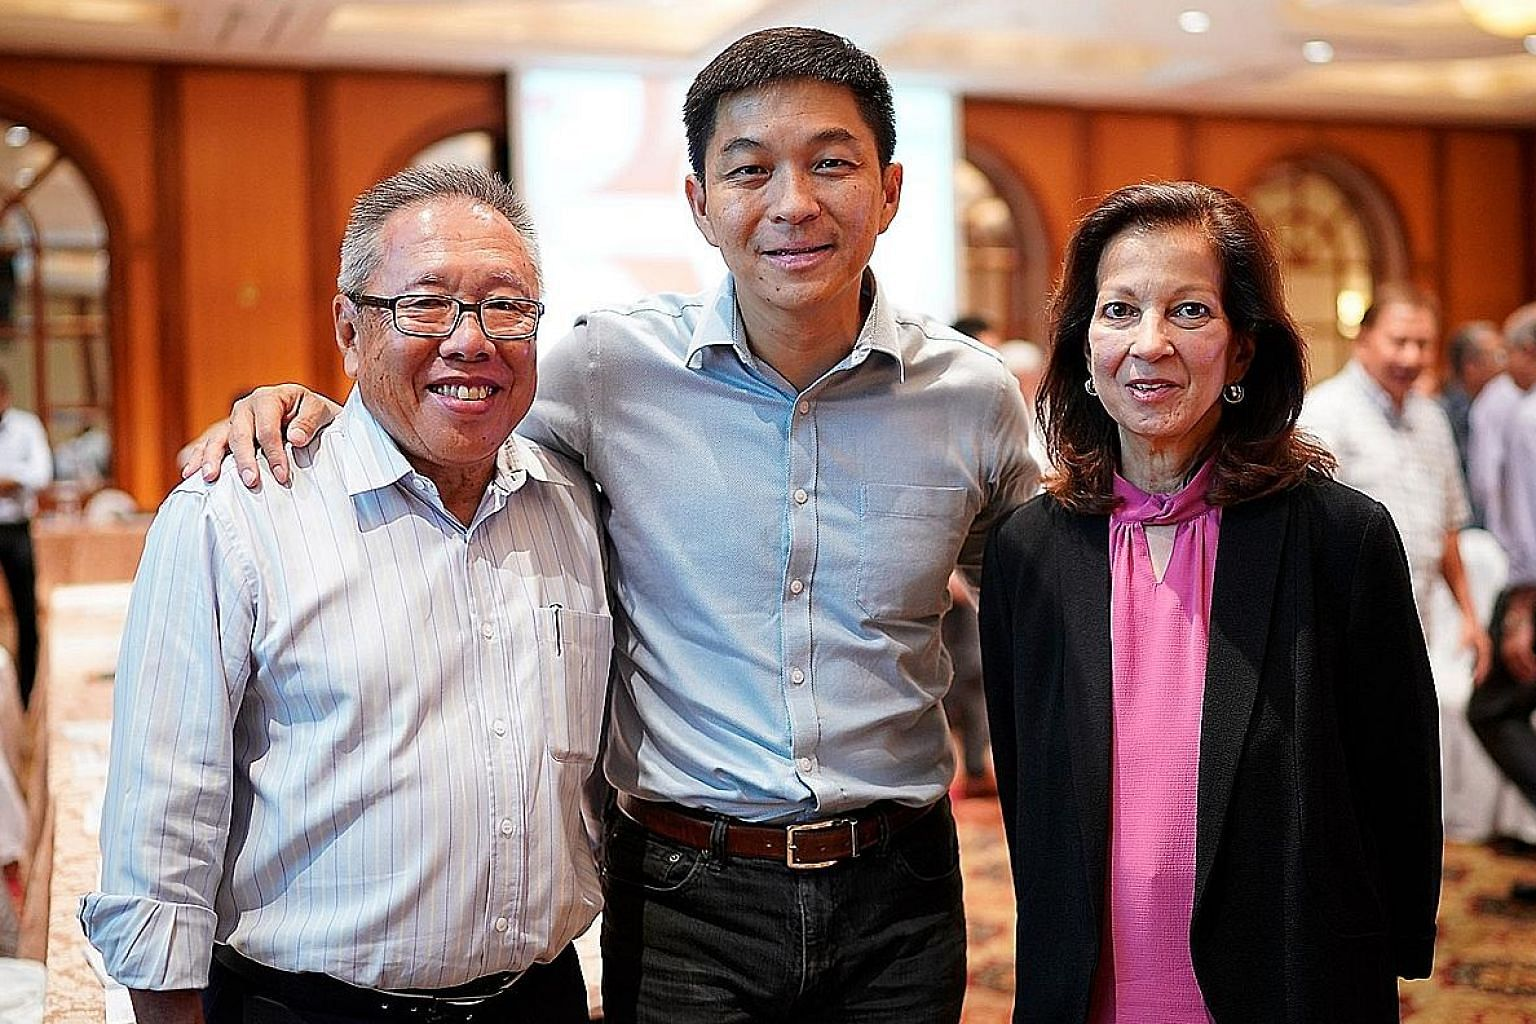 Singapore National Olympic Council president Tan Chuan-Jin (centre) with outgoing vice-presidents Low Teo Ping and Annabel Pennefather at the AGM.